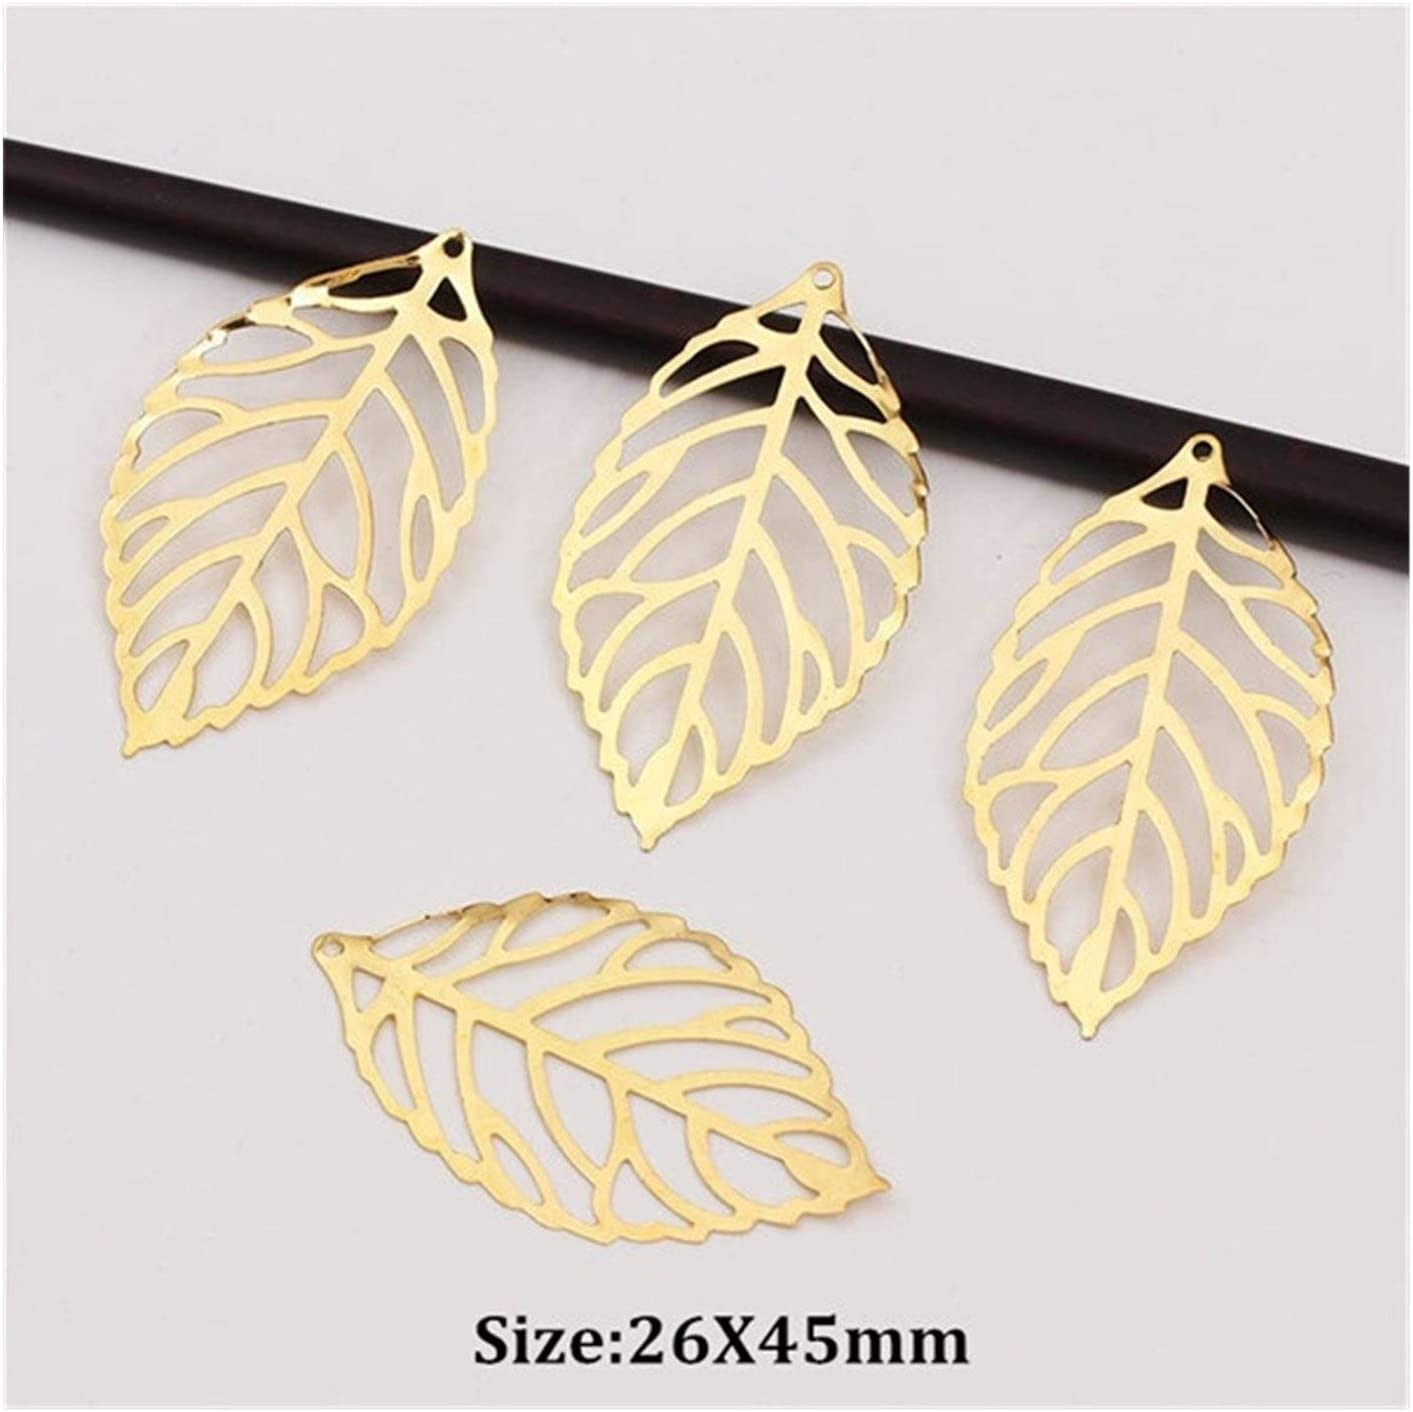 Rjjrr 50pcs Craft Hollow online shopping 5% OFF Leaves Jewelry Pendant Gold Accessories